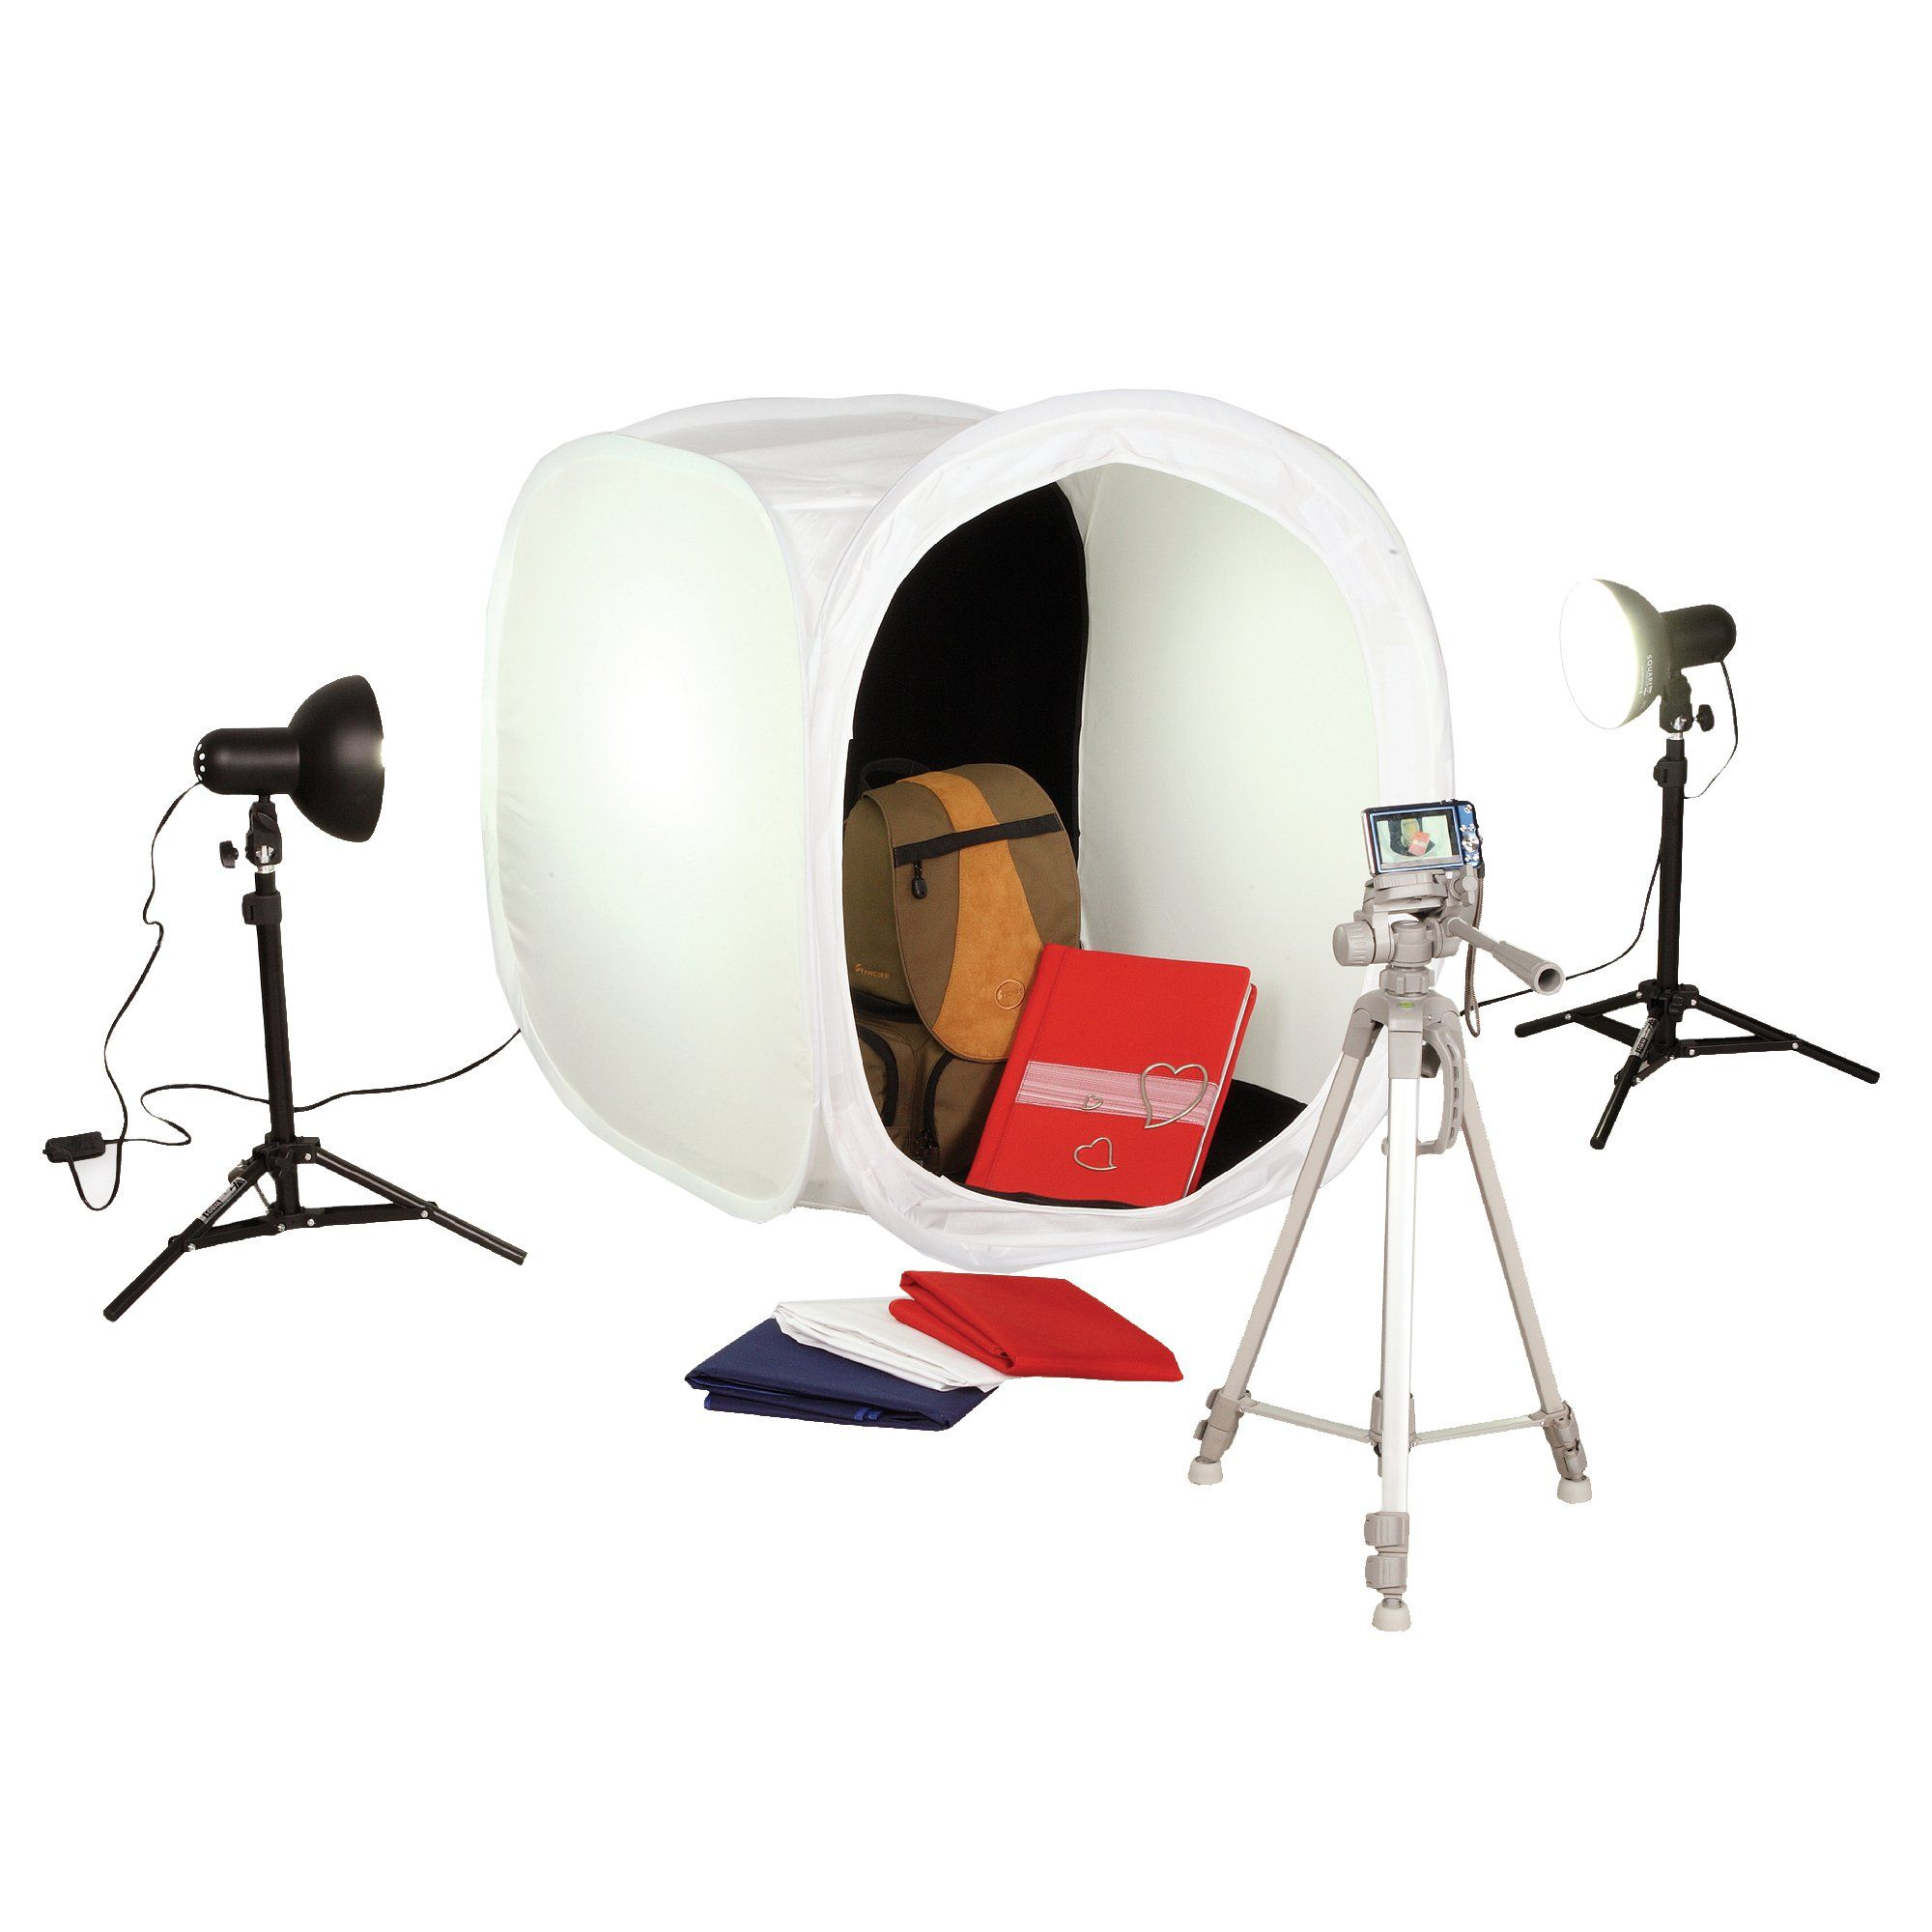 Square Perfect 1050 Sp500 Platinum Photo Studio With 2 Light Tents And 8 Backgrounds For Product Photography Photography Lighting Kits Photo Studio Photo Tent